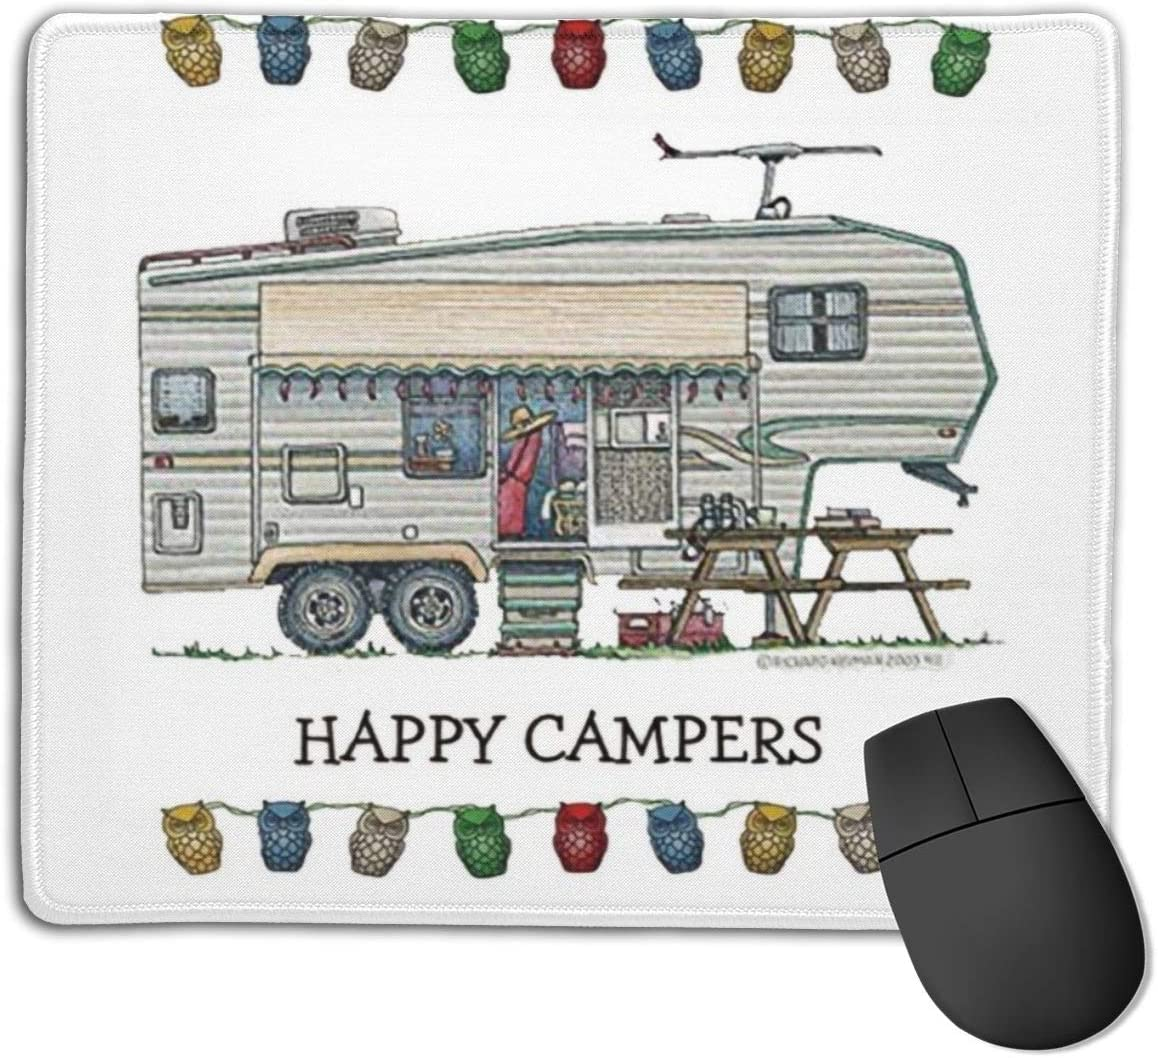 Non-Slip Rubber Mouse Pad for Cute RV Vintage Glass Egg Camper Travel Trailer Gaming Mouse Pad